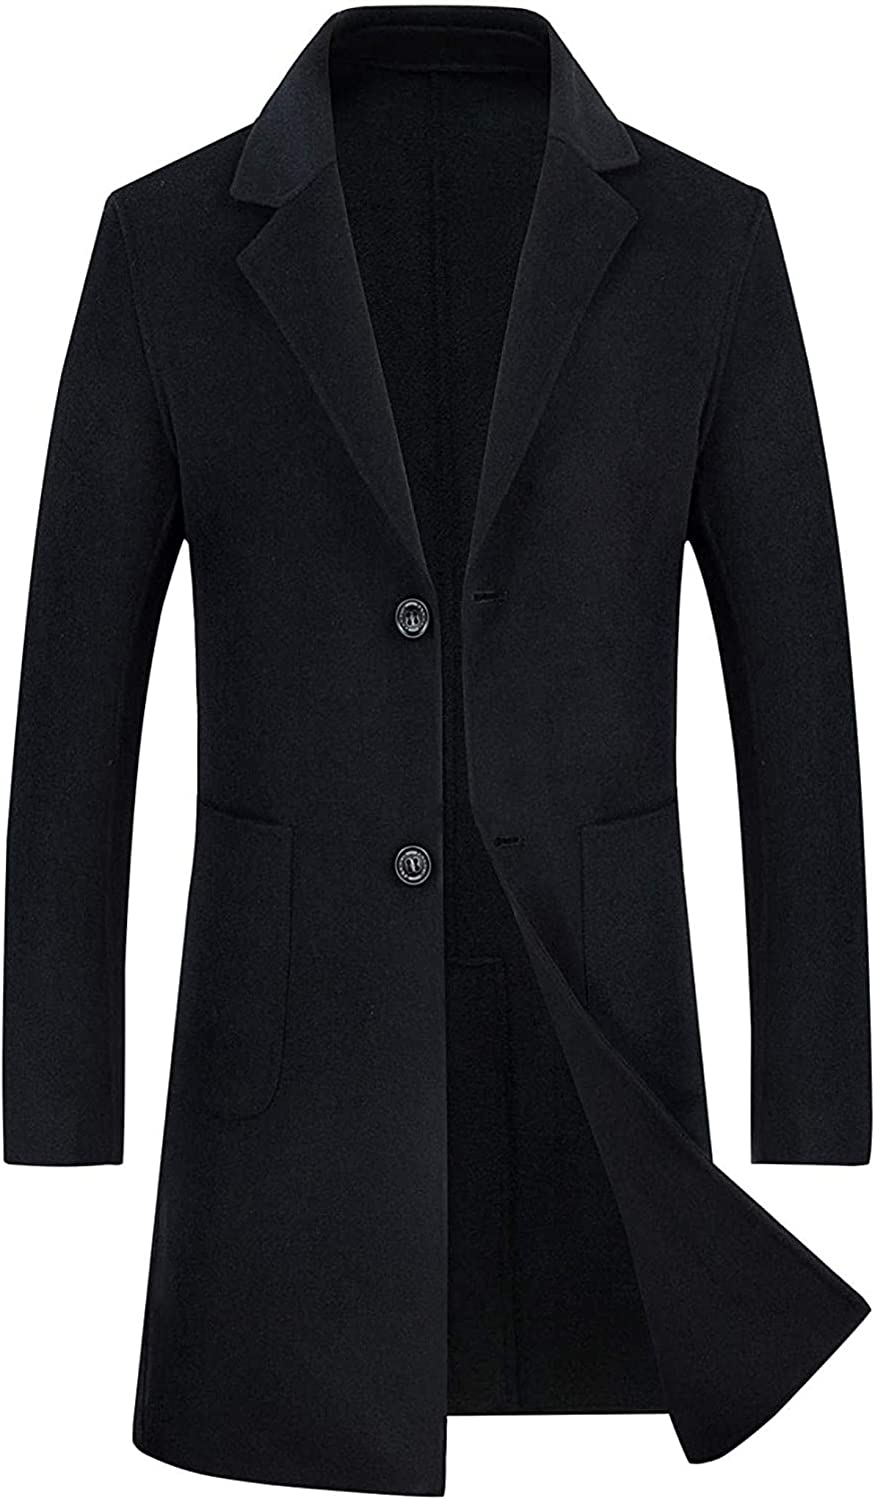 Men's Classic Notched Collar 2 Button Slim Unlined Wool Blend Midi Pea Coat